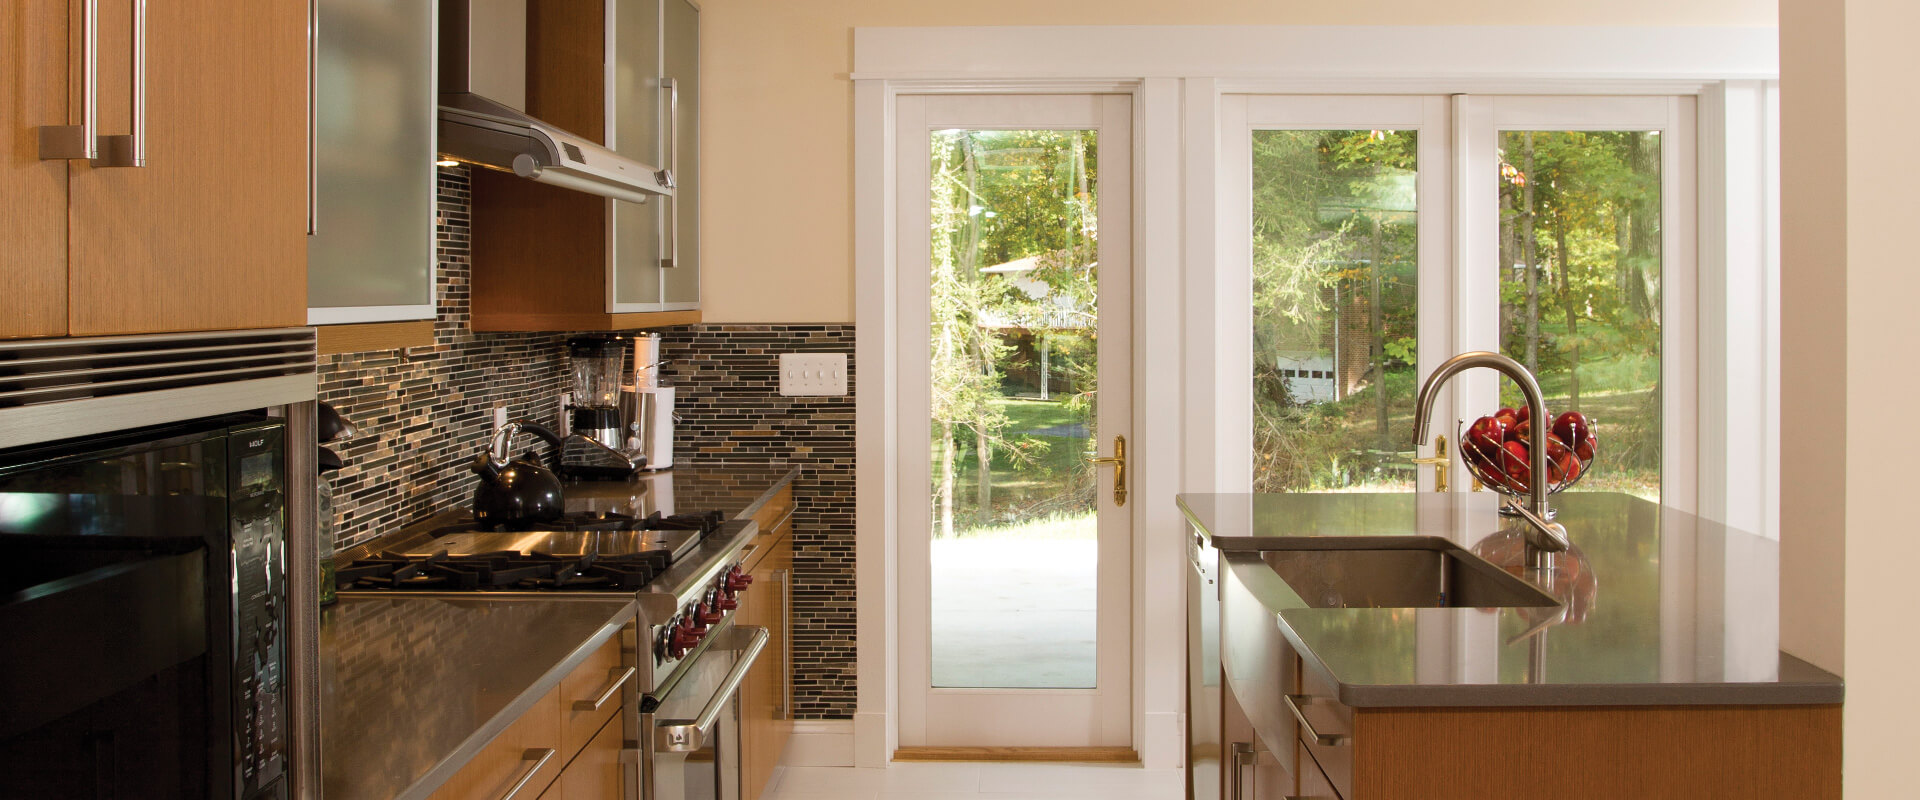 Forgent Complementary Swinging Patio Doors Kolbe Windows